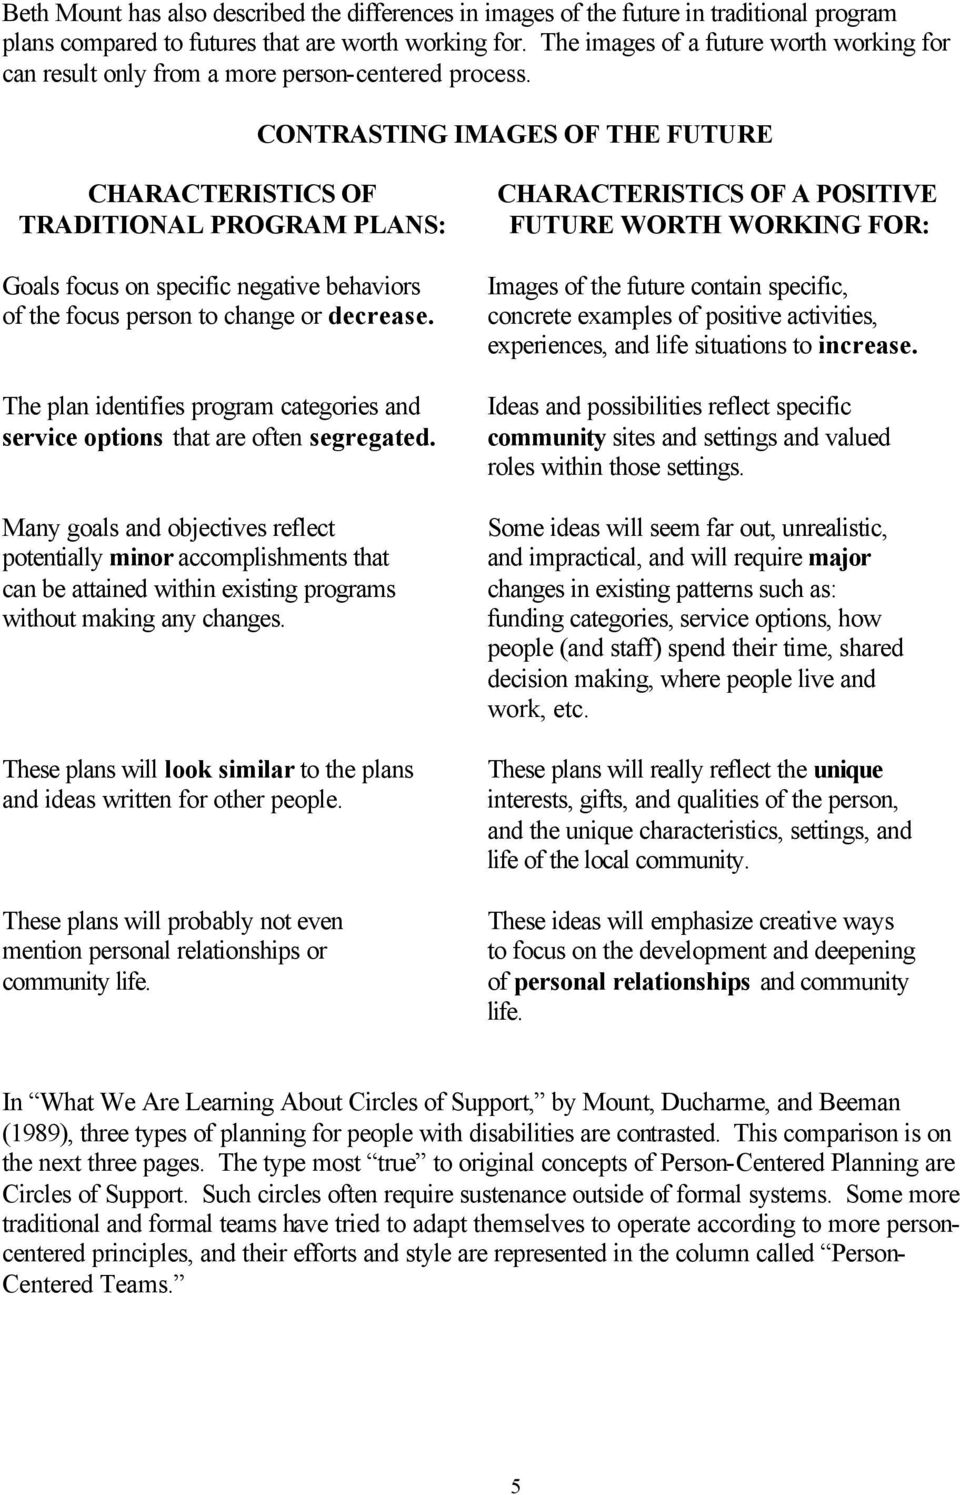 CONTRASTING IMAGES OF THE FUTURE CHARACTERISTICS OF TRADITIONAL PROGRAM PLANS: Goals focus on specific negative behaviors of the focus person to change or decrease.